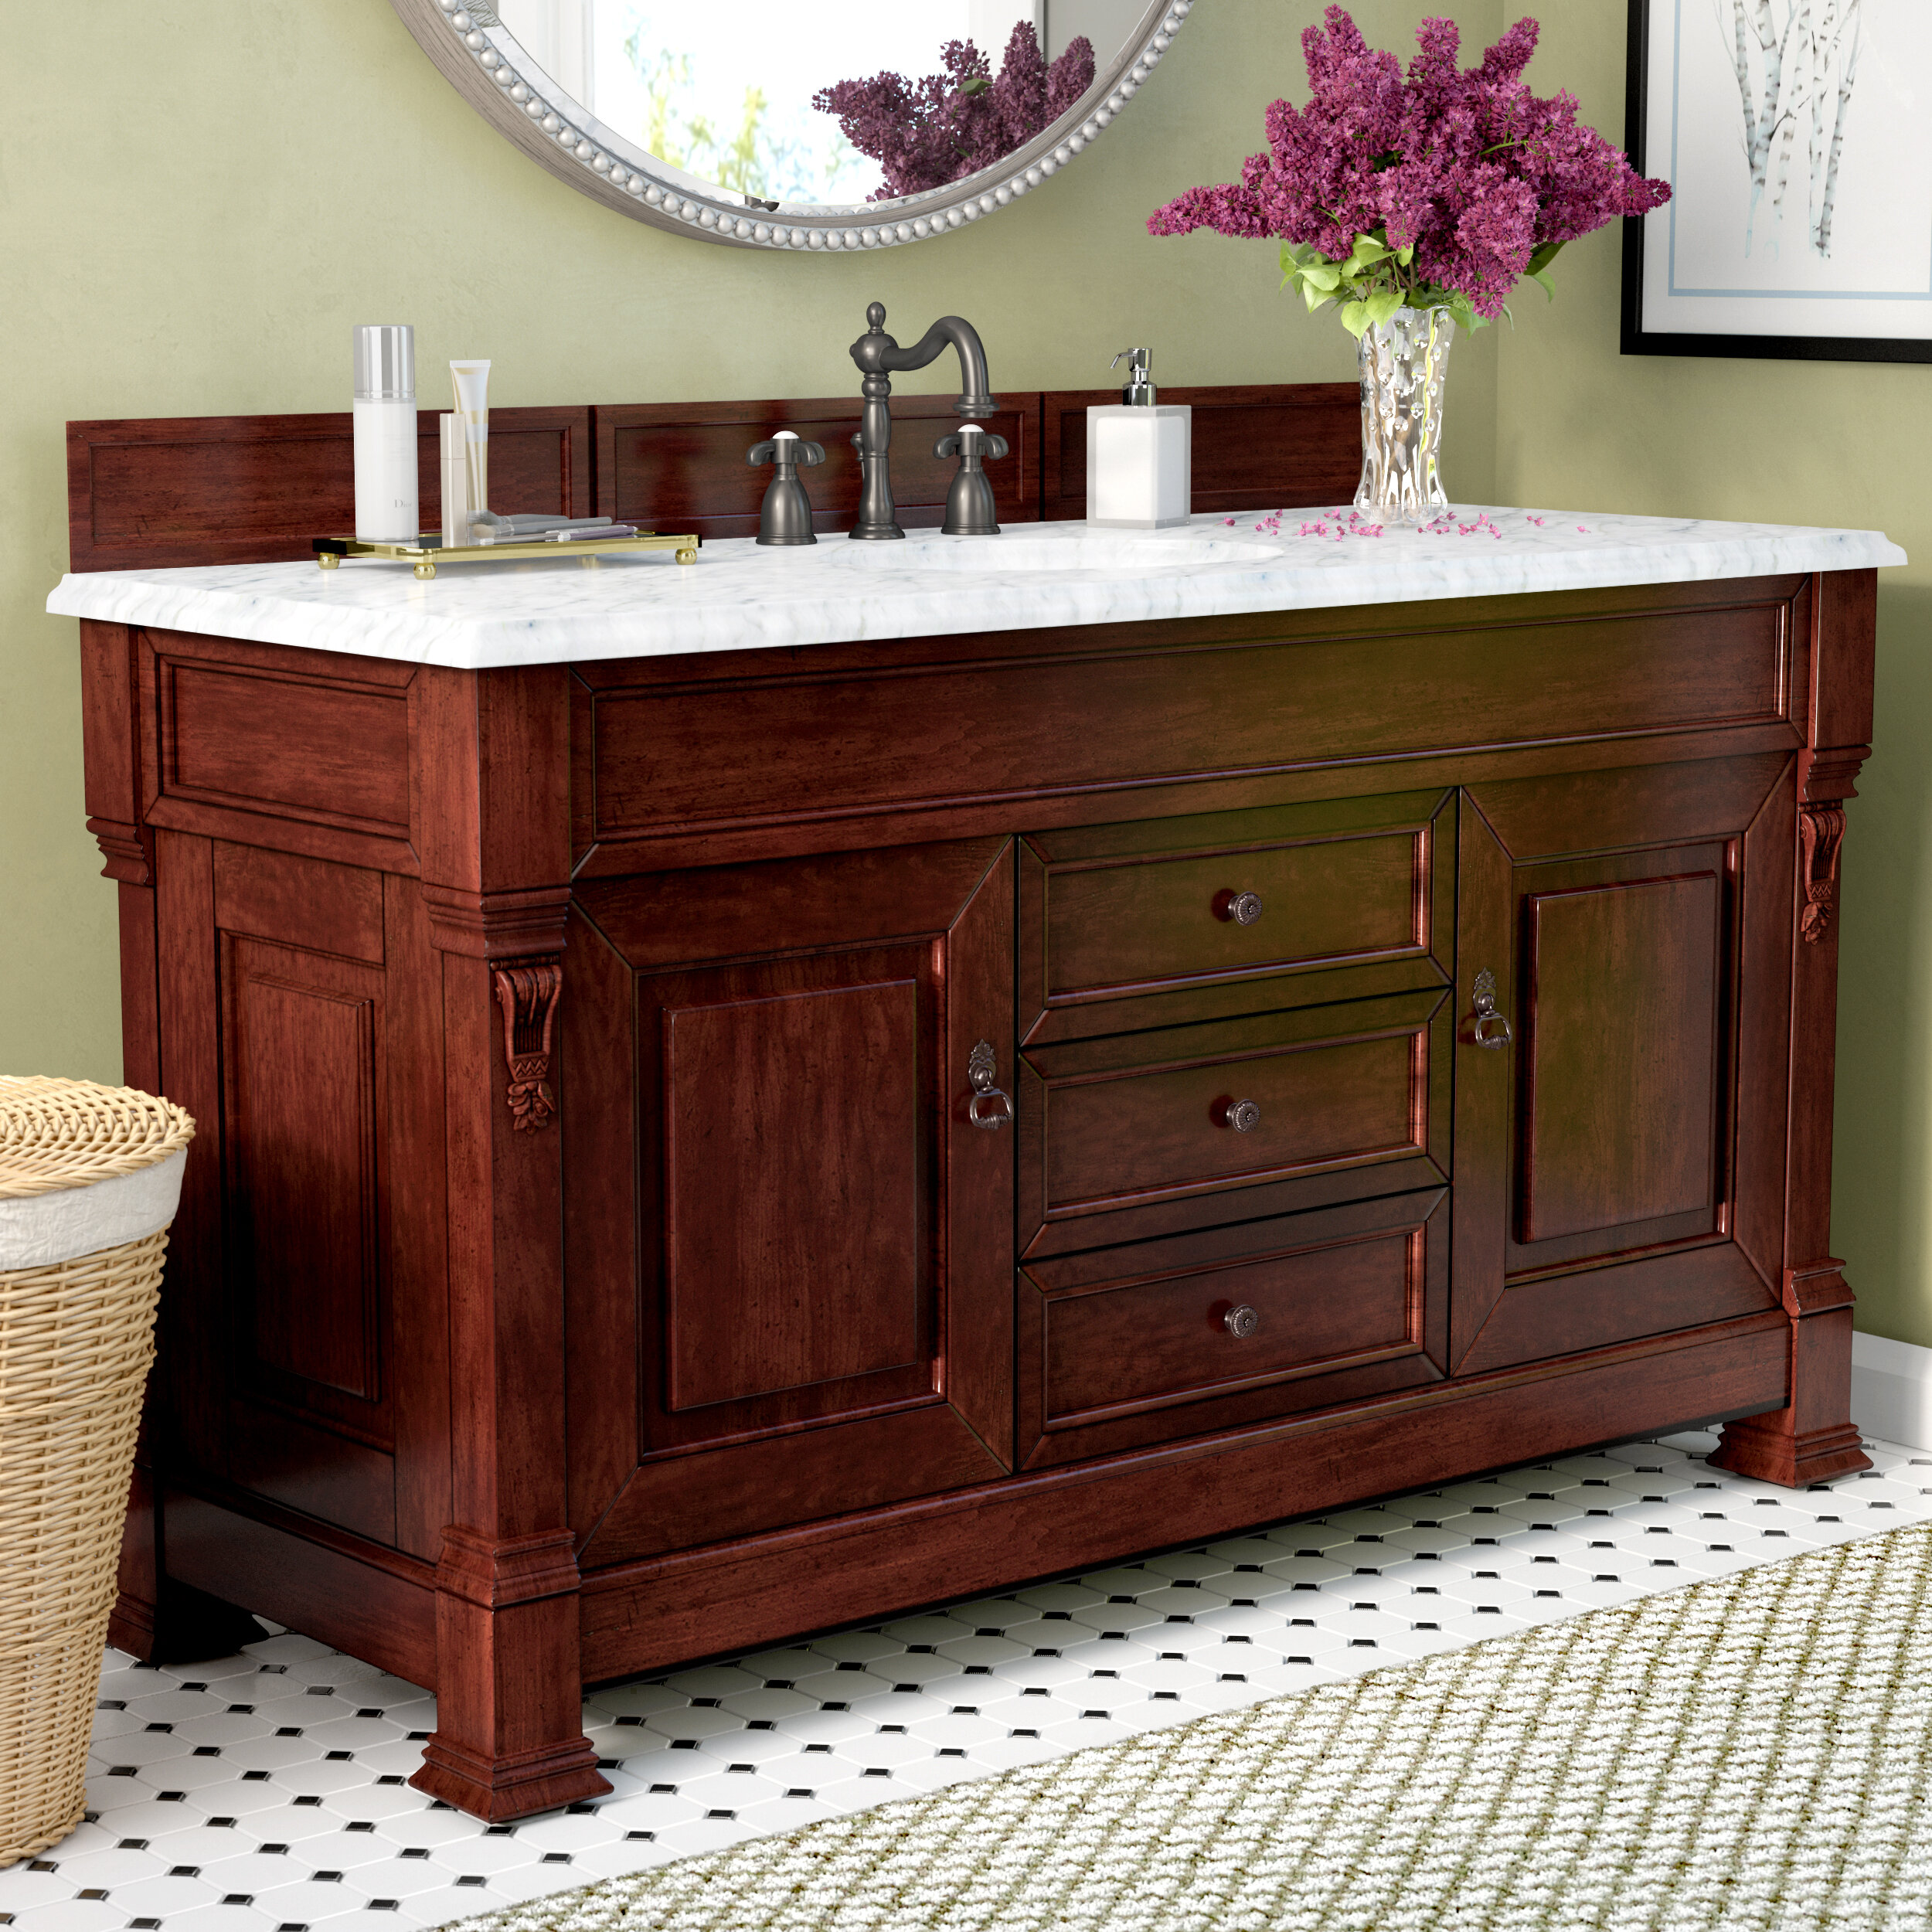 Darby Home Co Penelope 60 Single Burnished Mahogany Bathroom Vanity Set With Drawers Reviews Wayfair